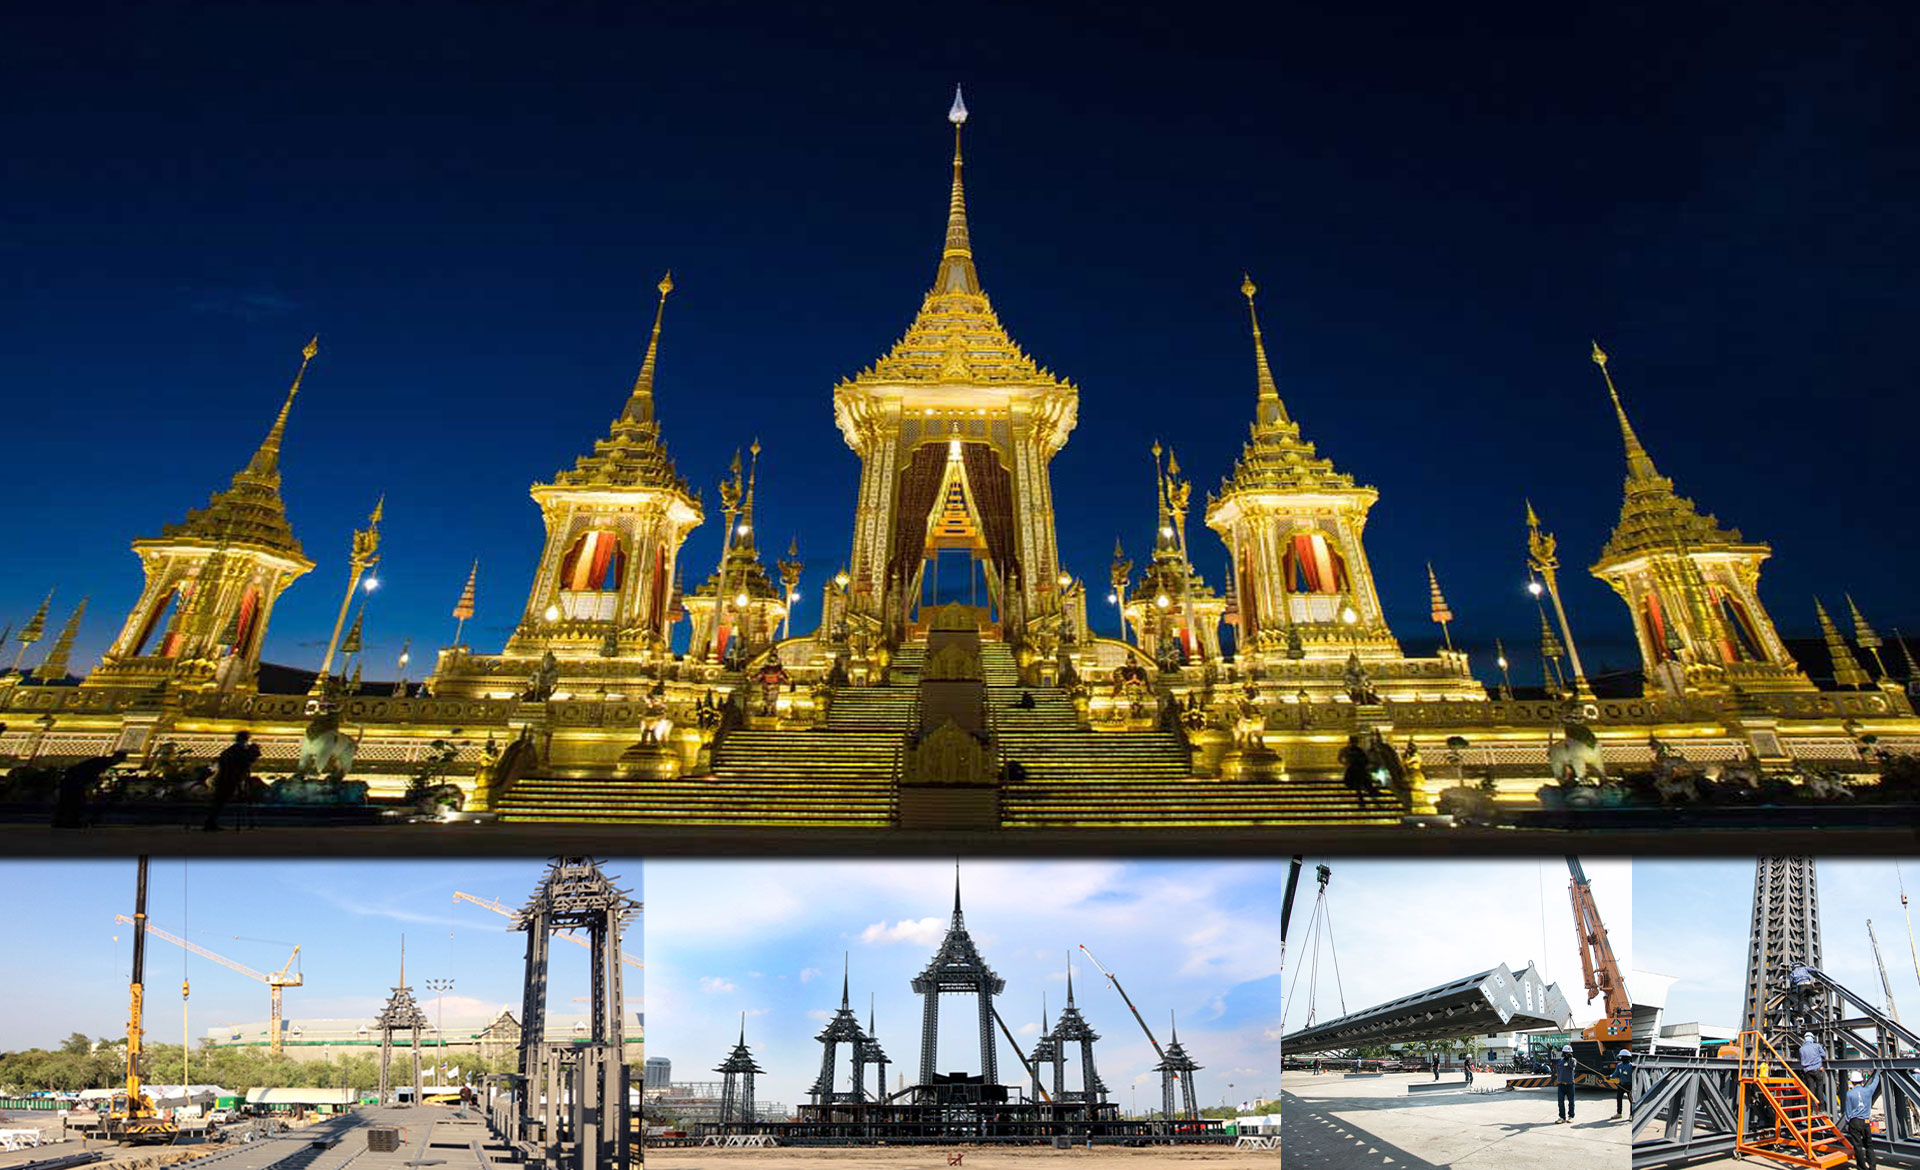 The Construction of the Royal Crematorium for the Funeral of the Late King Bhumibol Adulyadej